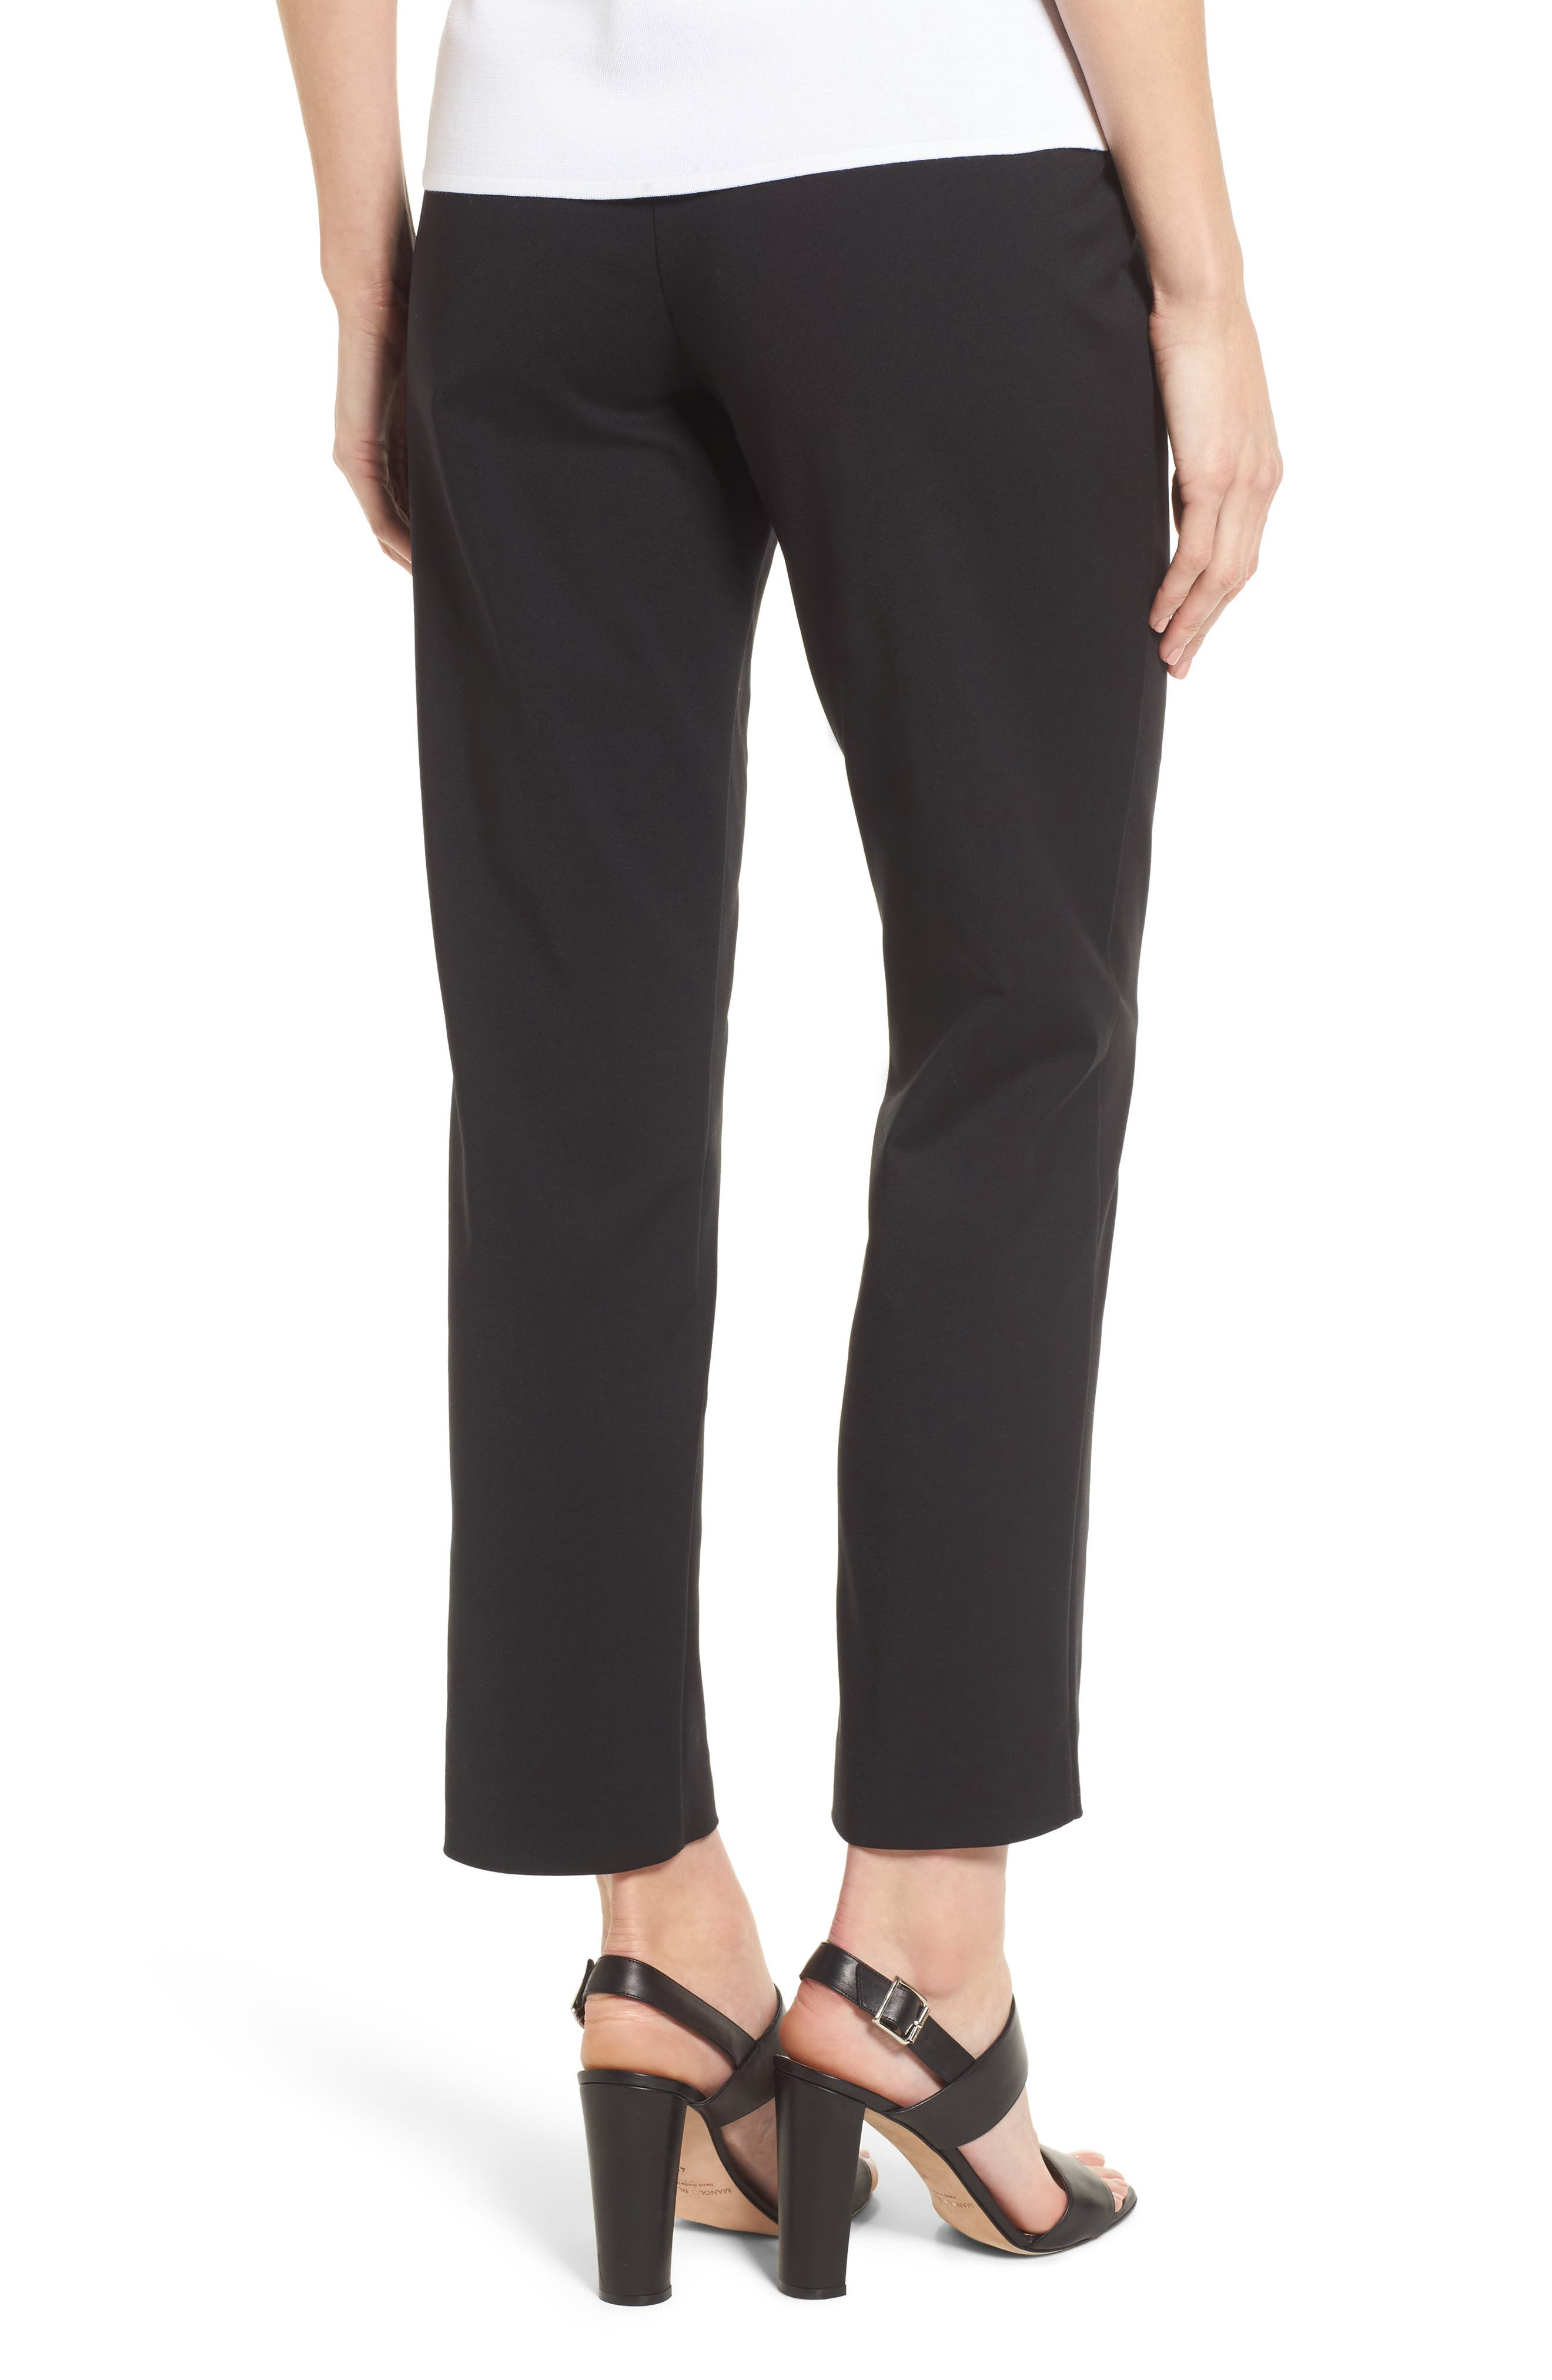 Ming Want Pull-On Ankle Pants,                             Alternate thumbnail 2, color,